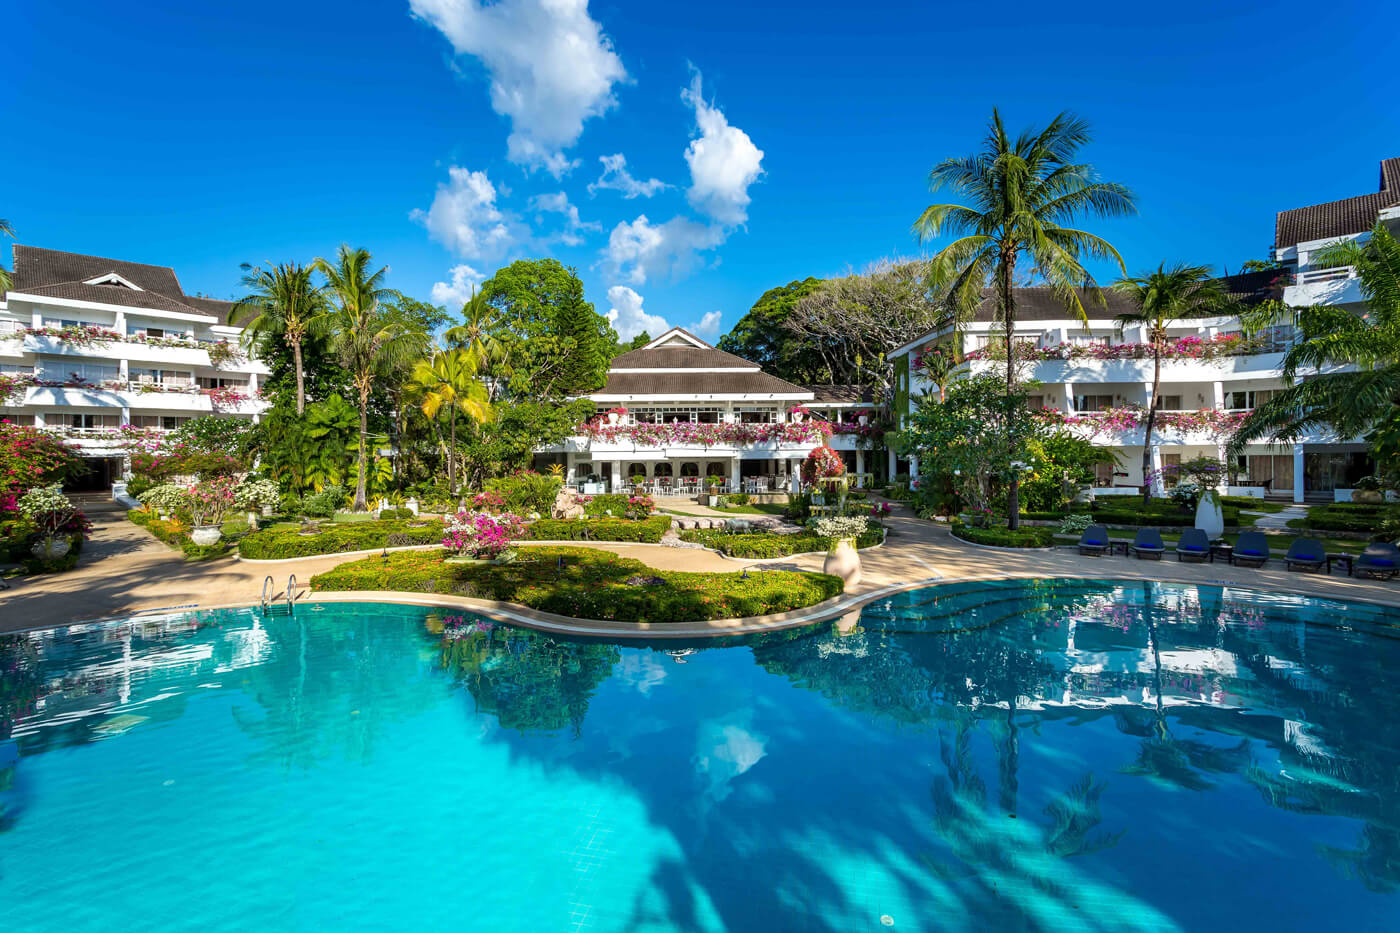 Отель Thavorn Palm Beach Resort Phuket